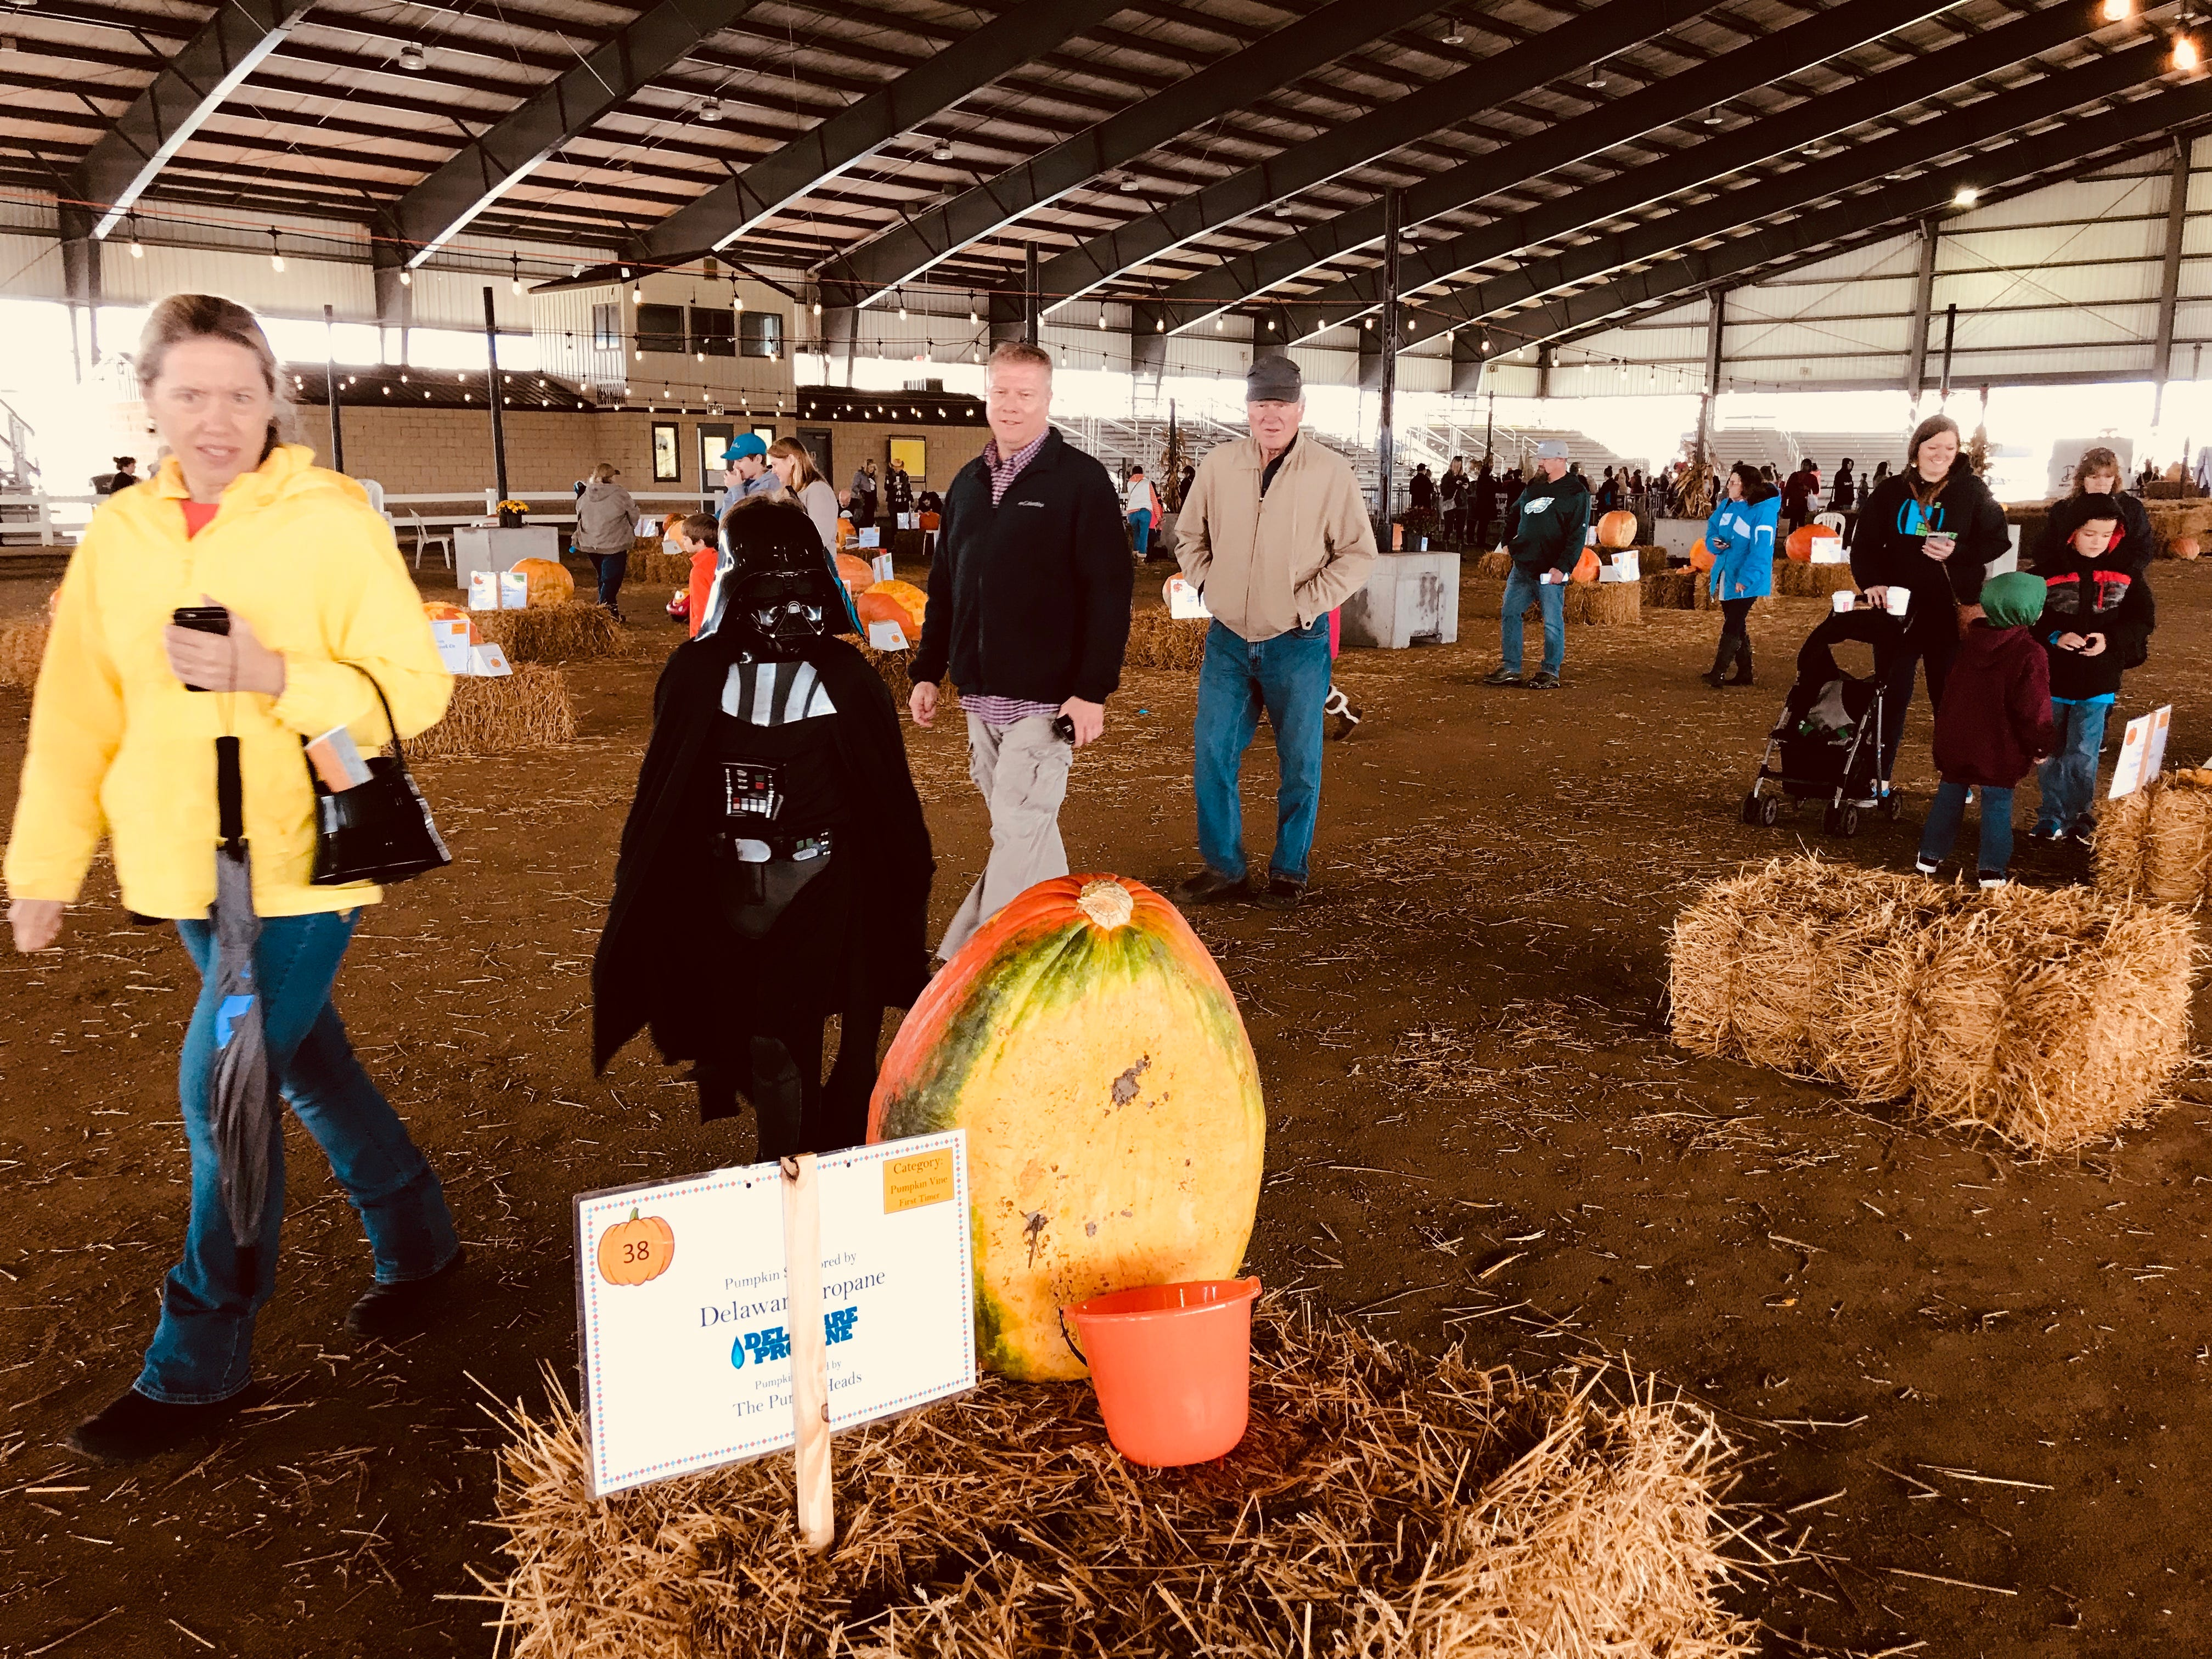 Darth Vader dropped by The first Great Delaware Pumpkin Carve at the Delaware State Fairgrounds in Harrington Saturday.